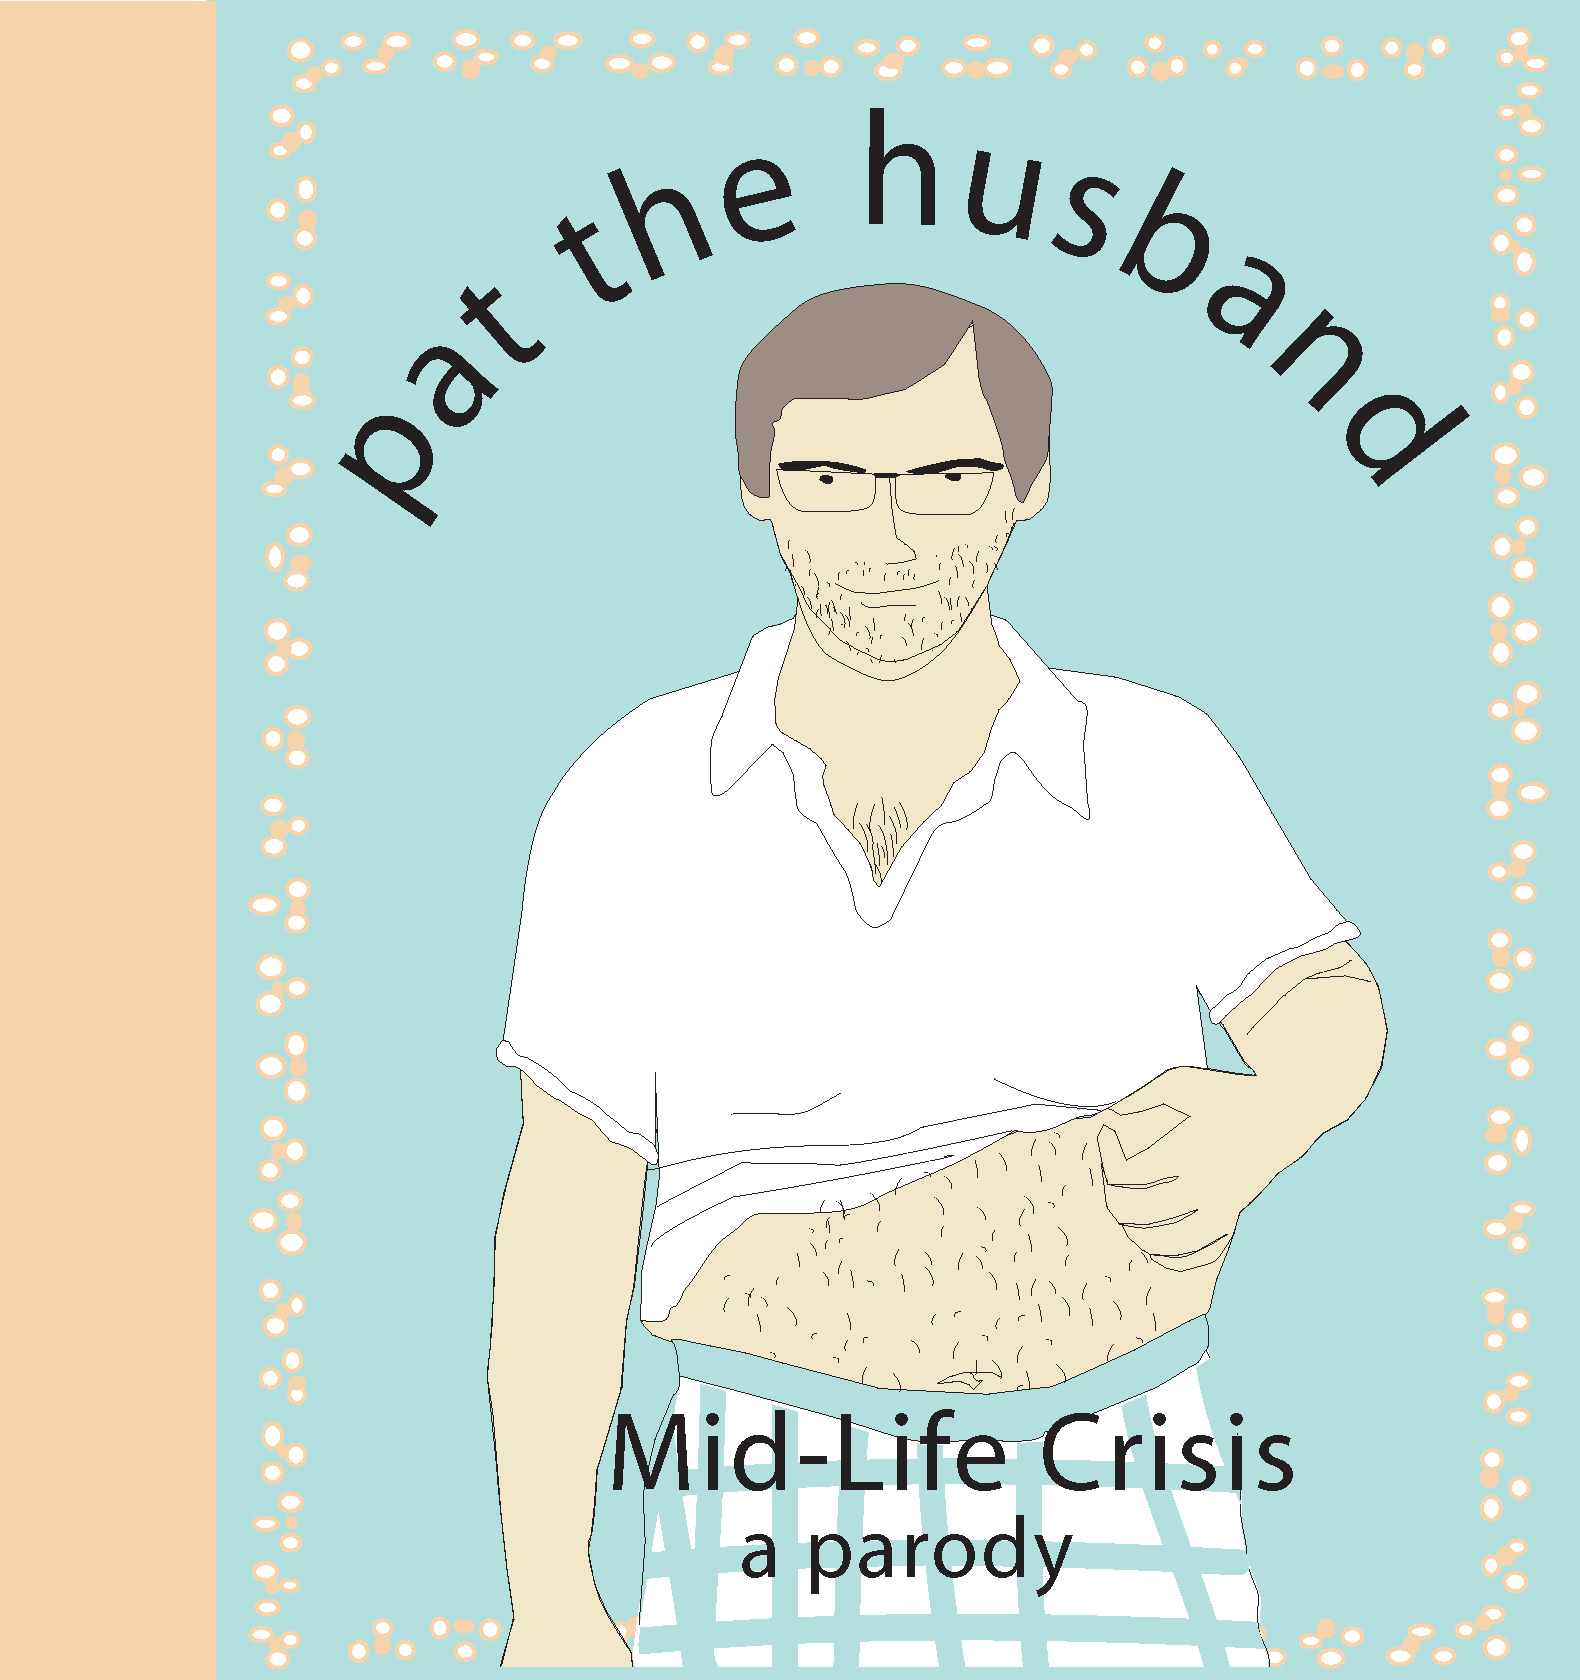 Pat-the-husband-mid-life-crisis-a-parody-9781604334395_hr